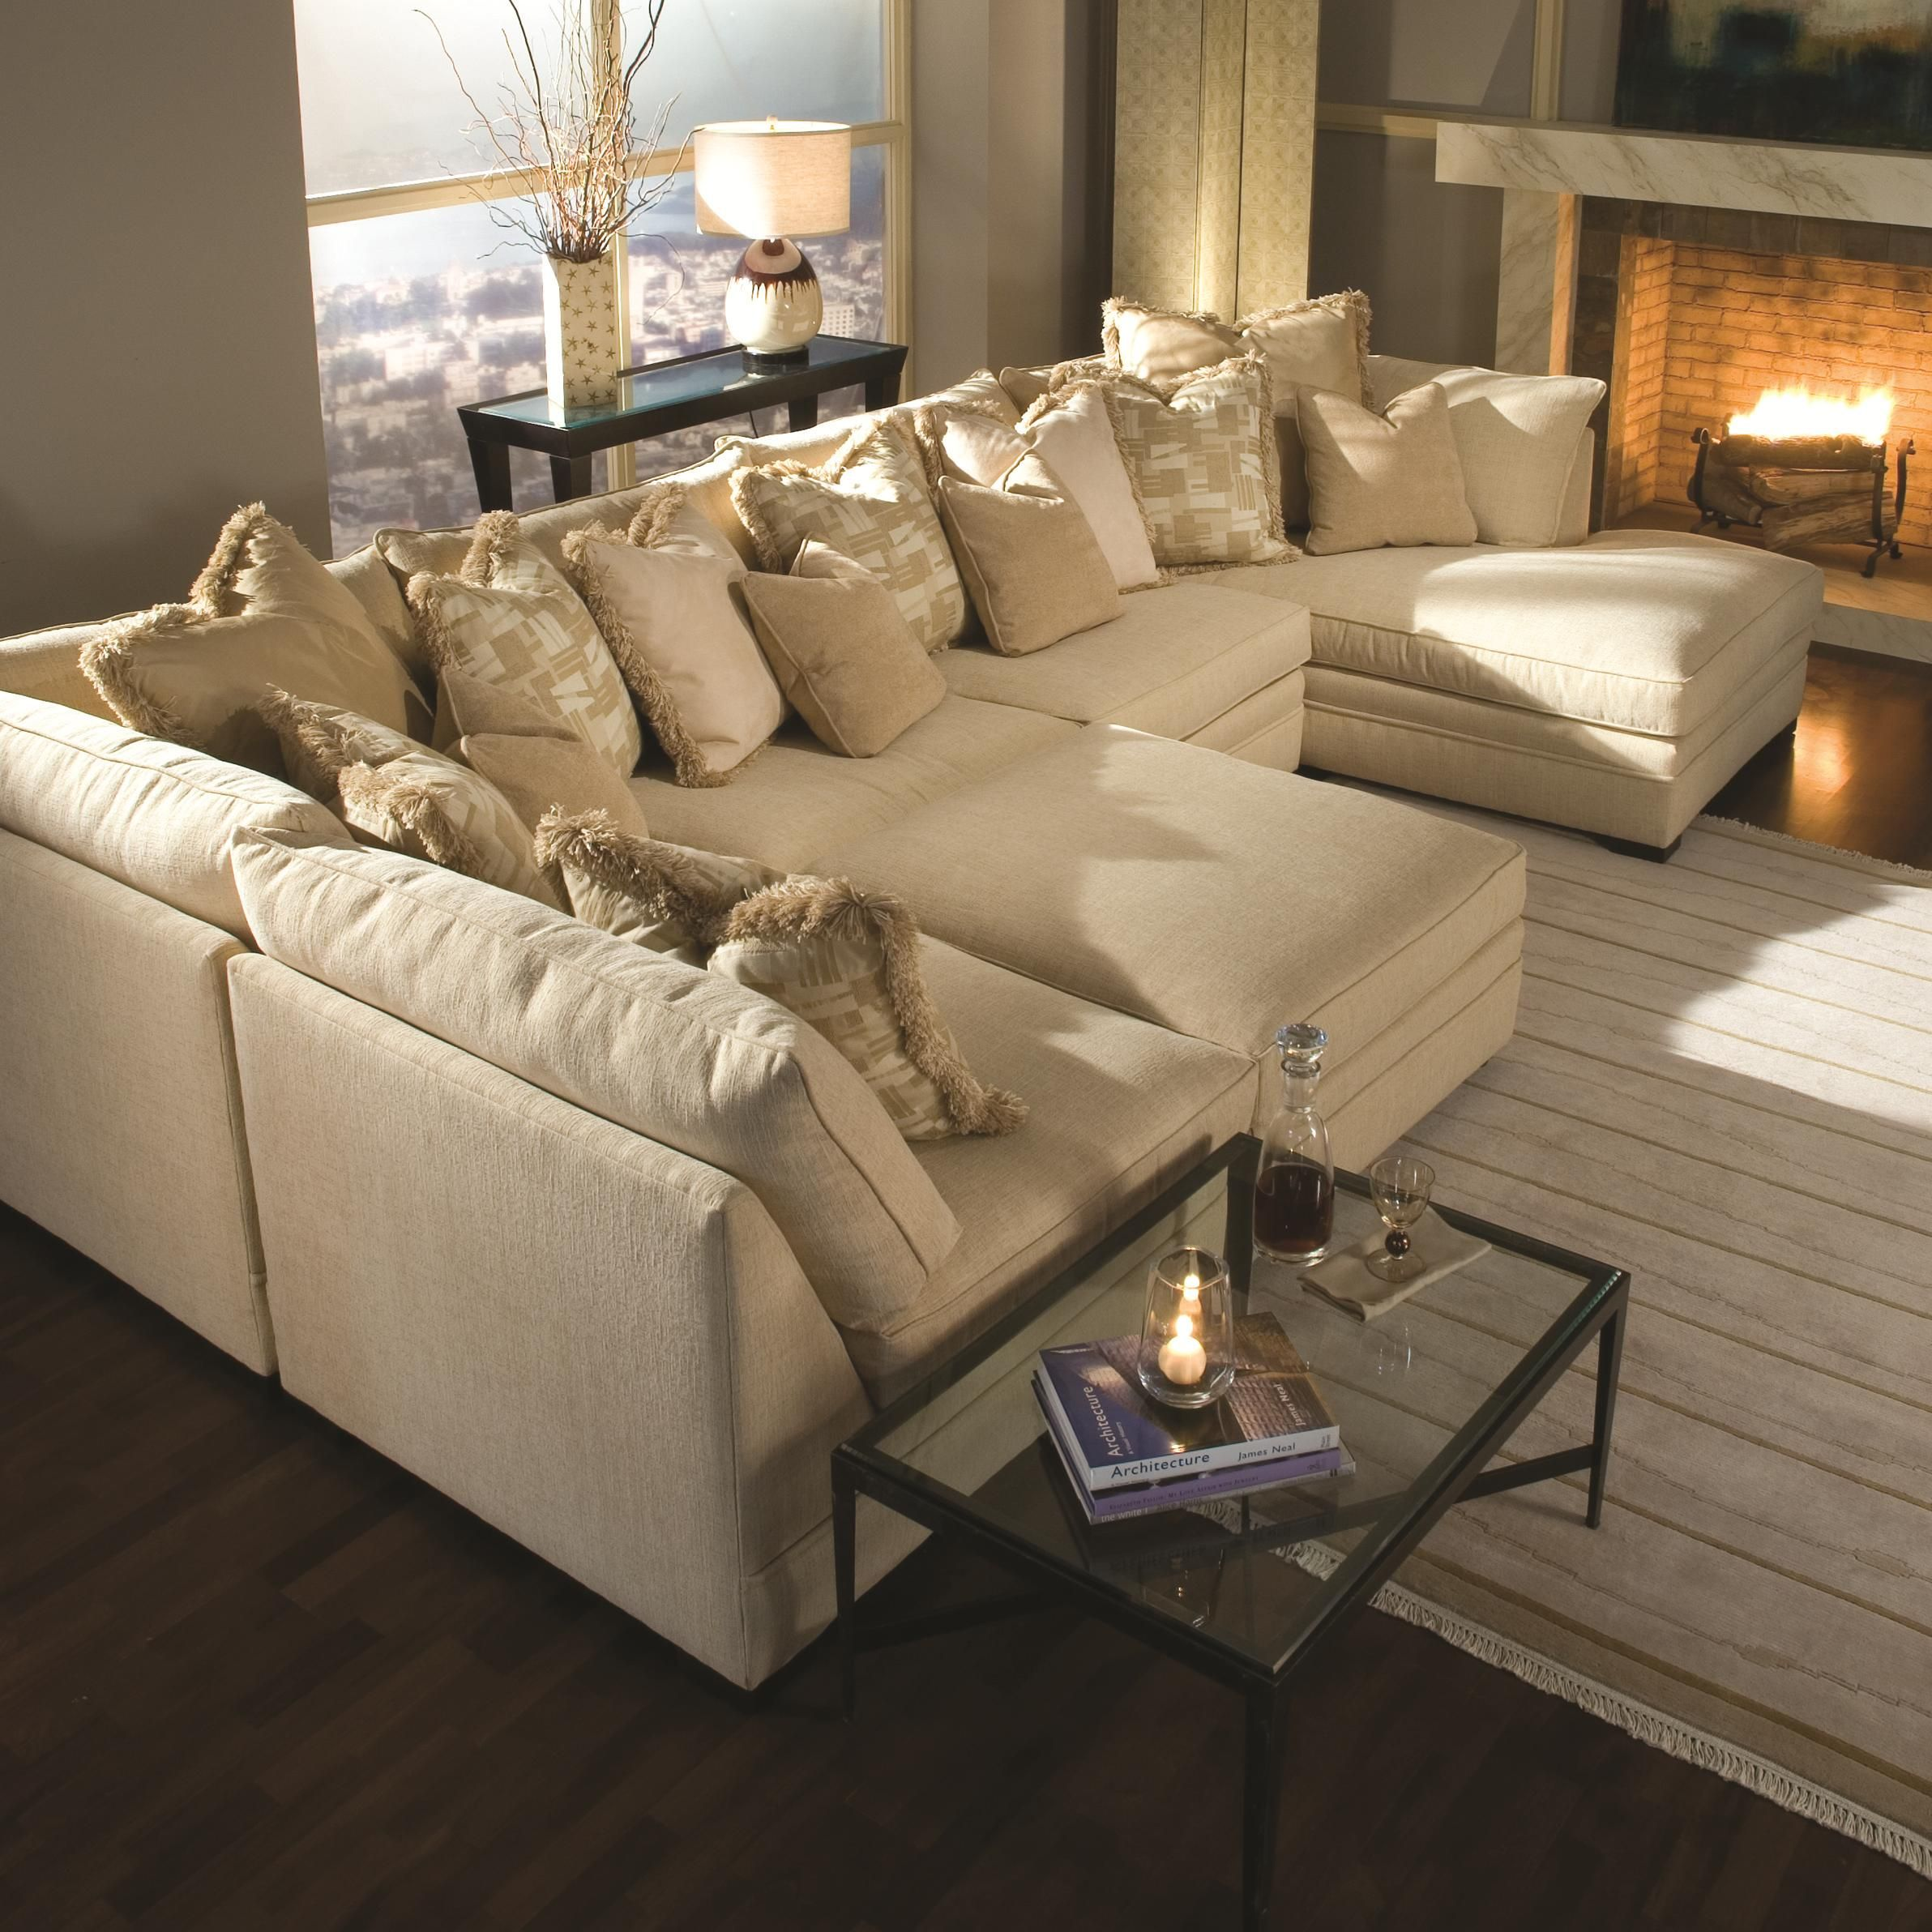 sofa beds naples florida intex inflatable review 7100 contemporary u shape sectional with chaise by